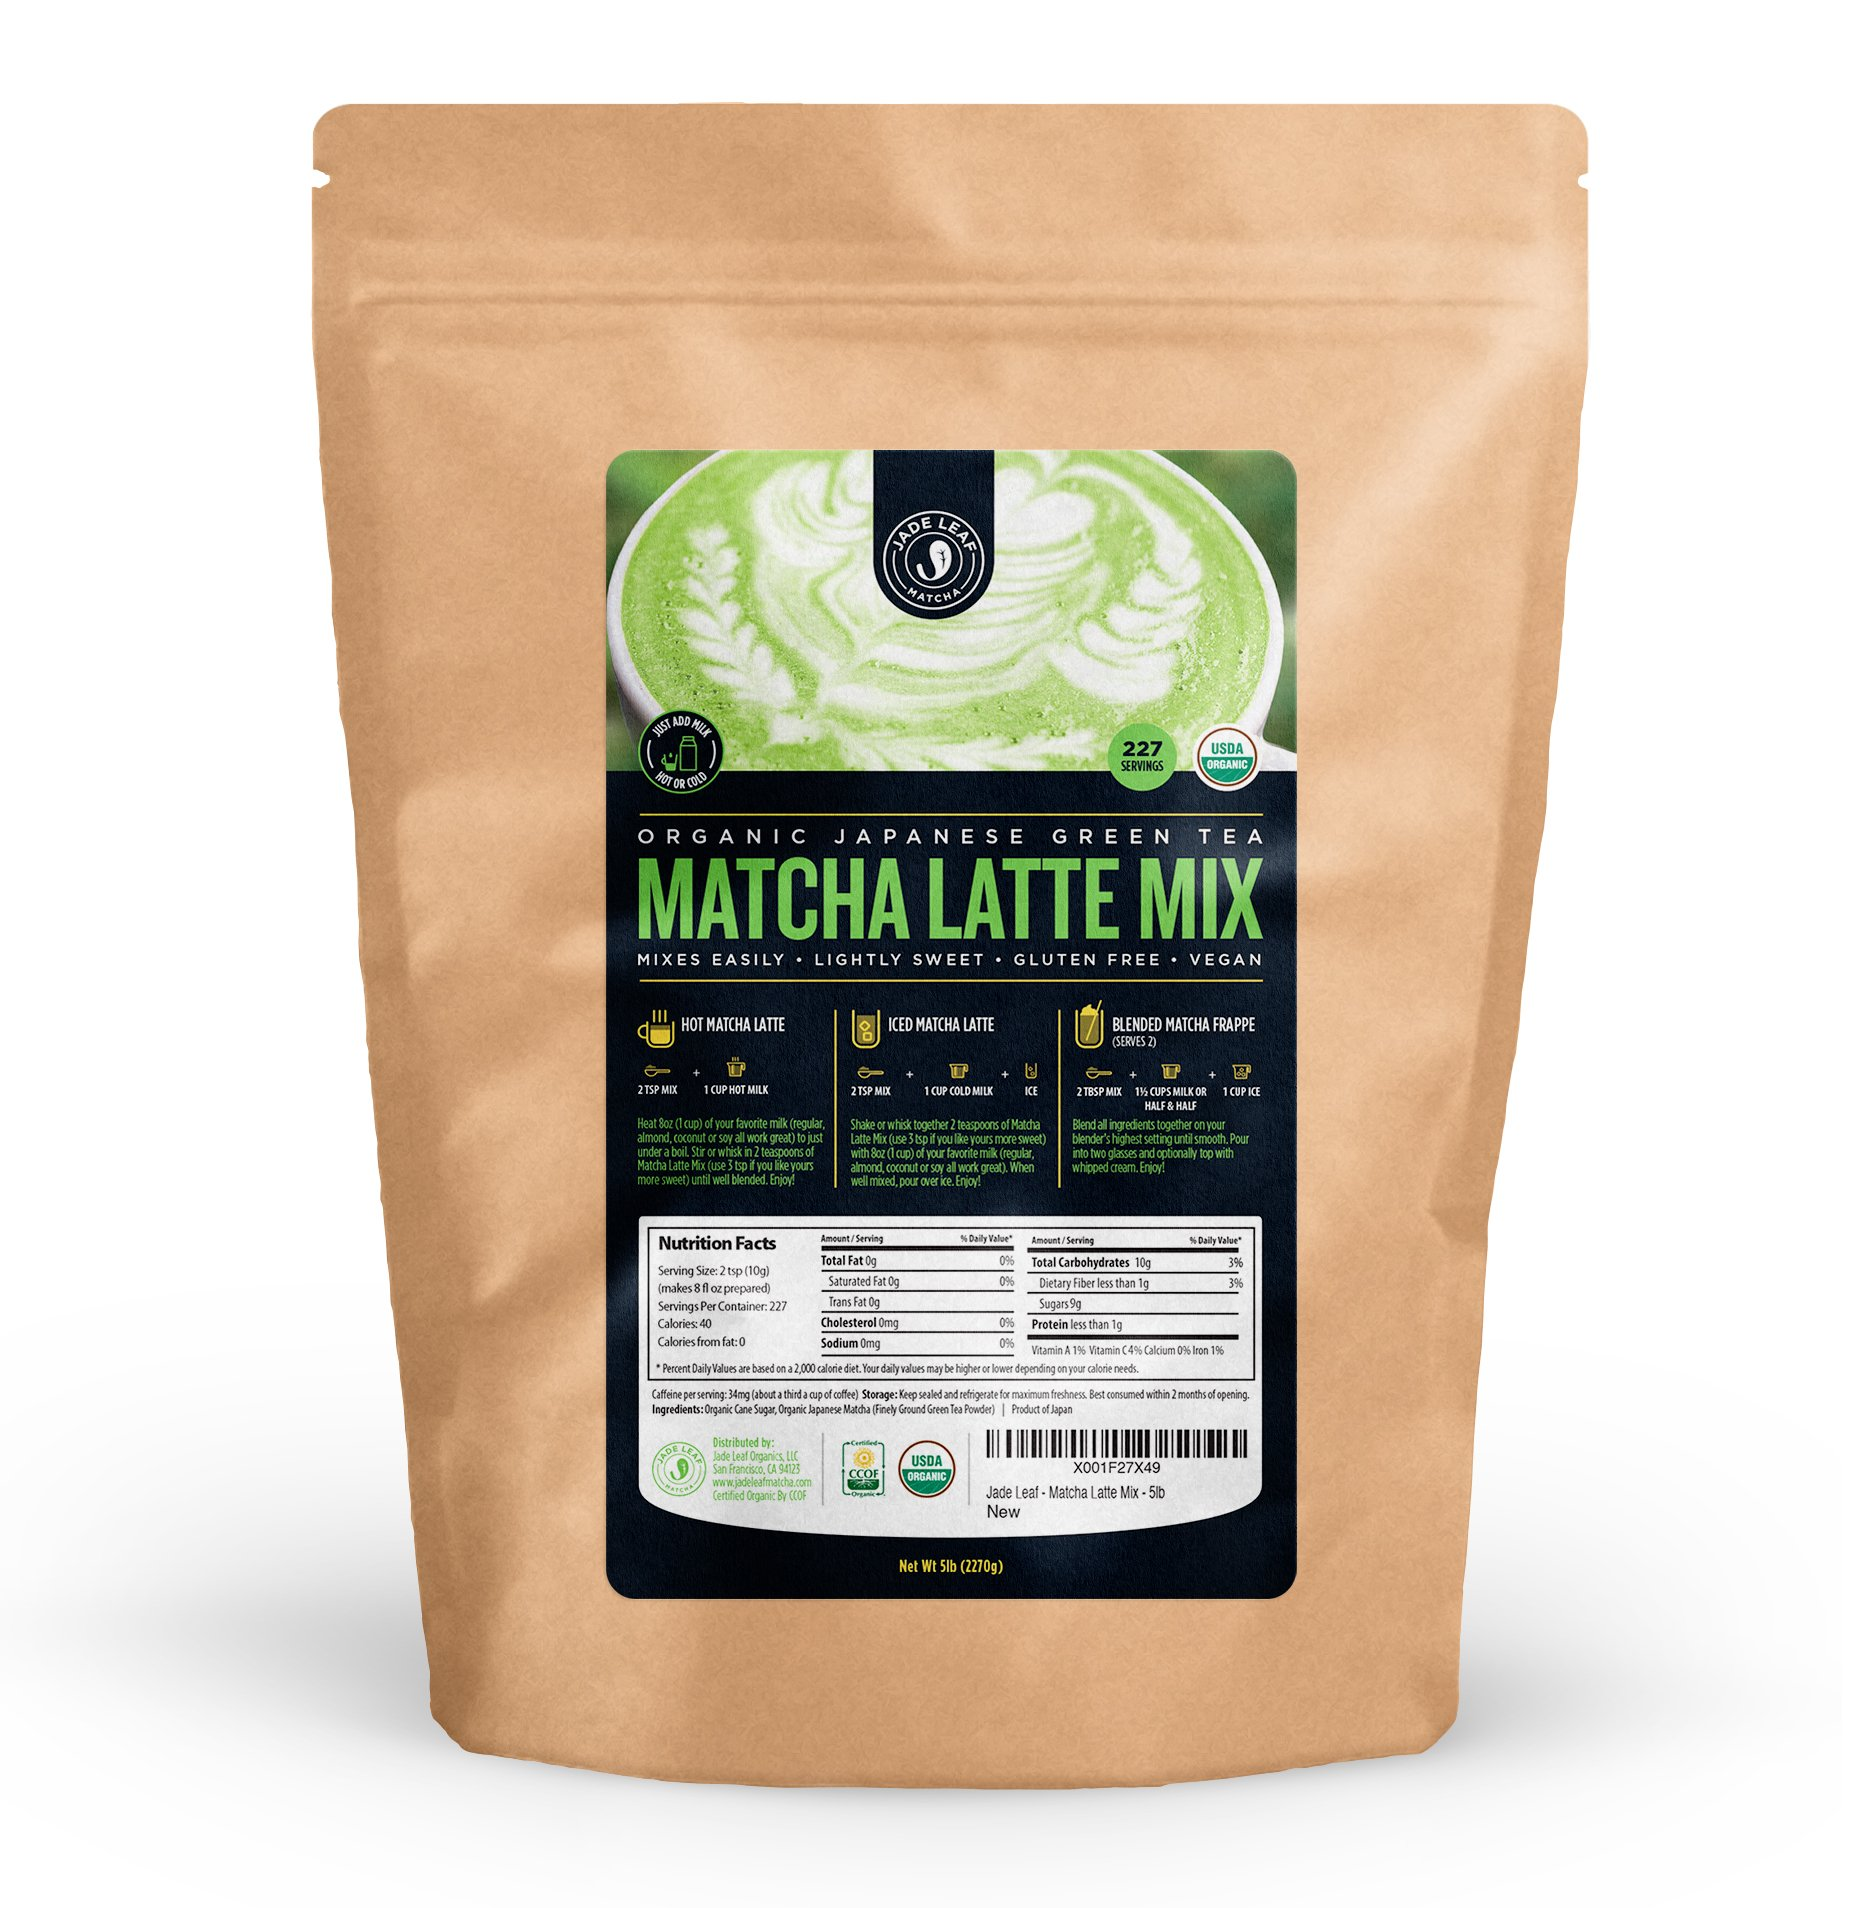 Jade Leaf - Organic Japanese Matcha Latte Mix - Cafe Style Sweetened Blend - Sweet Matcha Green Tea Powder [5lb Bulk Size] by Jade Leaf Matcha